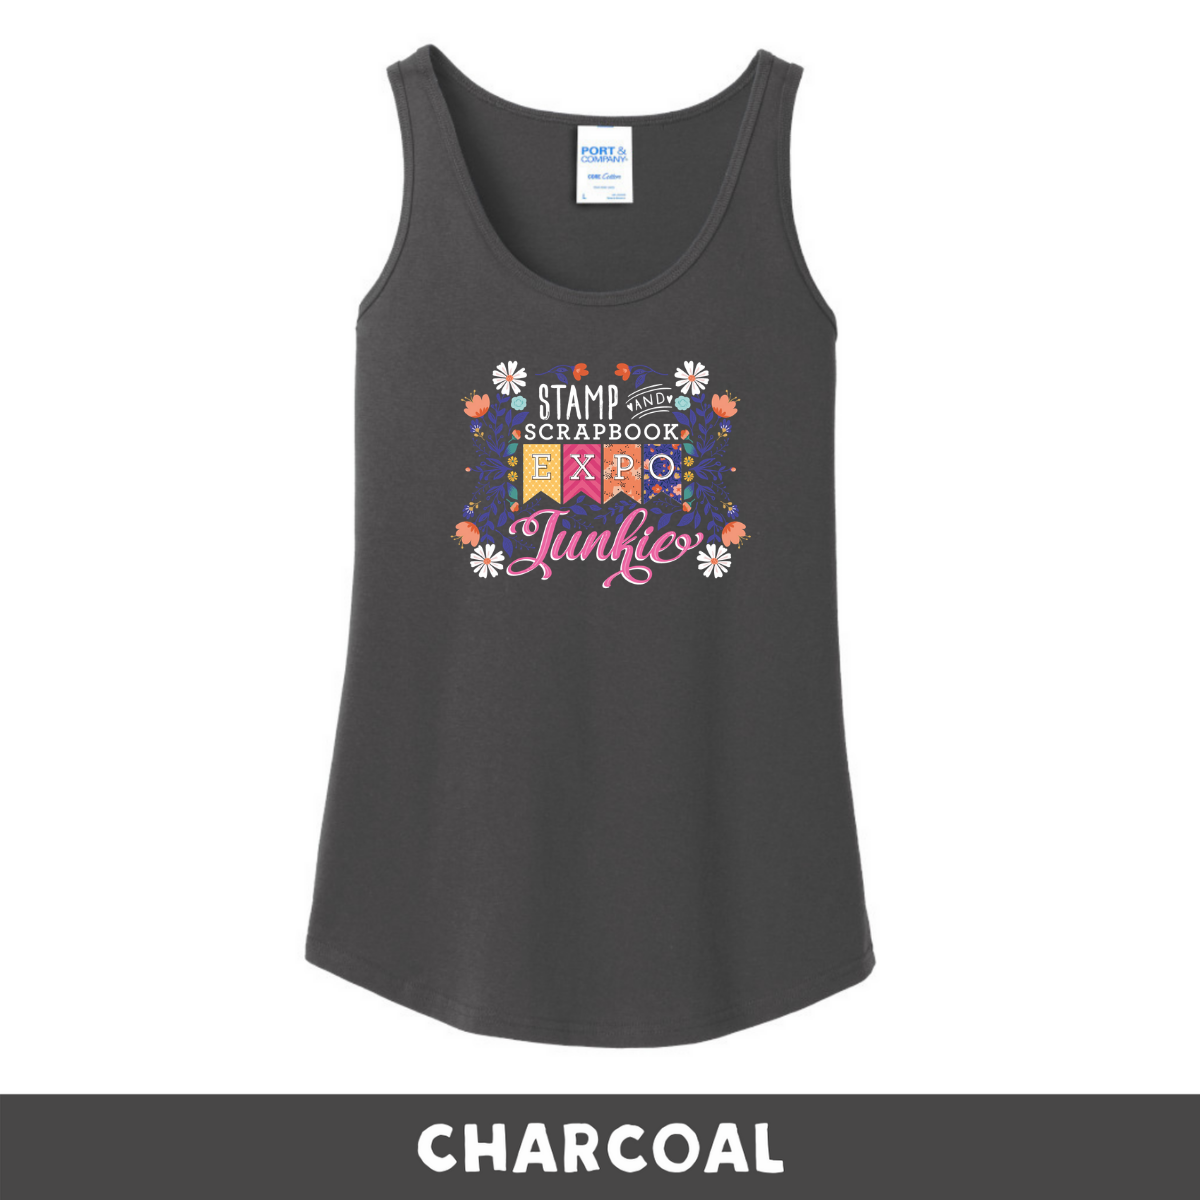 Charcoal -  Woman's Cut Tank - SSBE Junkie With/Flowers